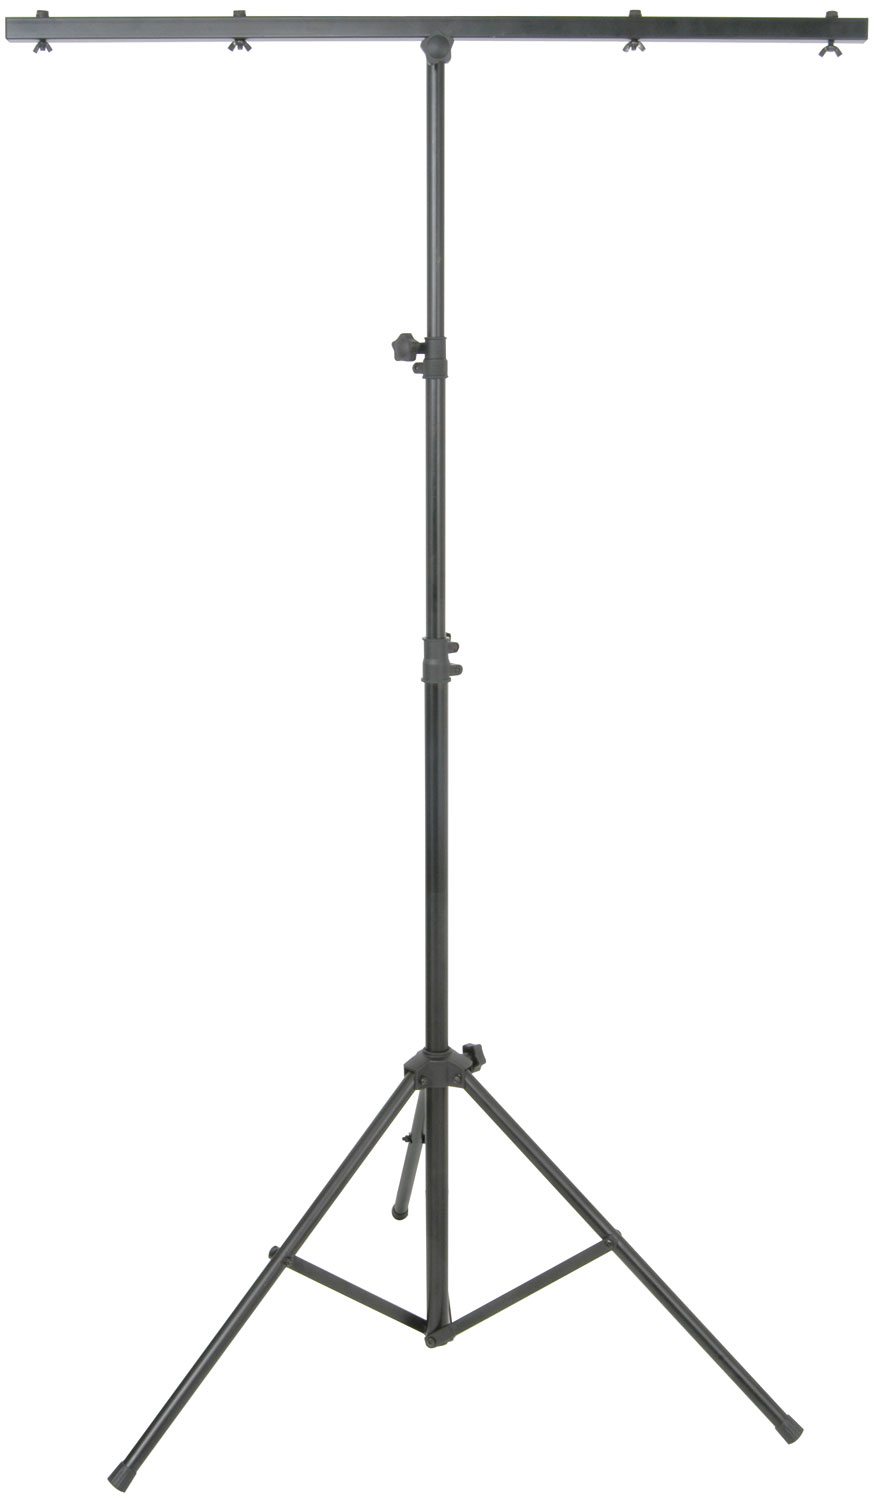 LT01 Lighting stand